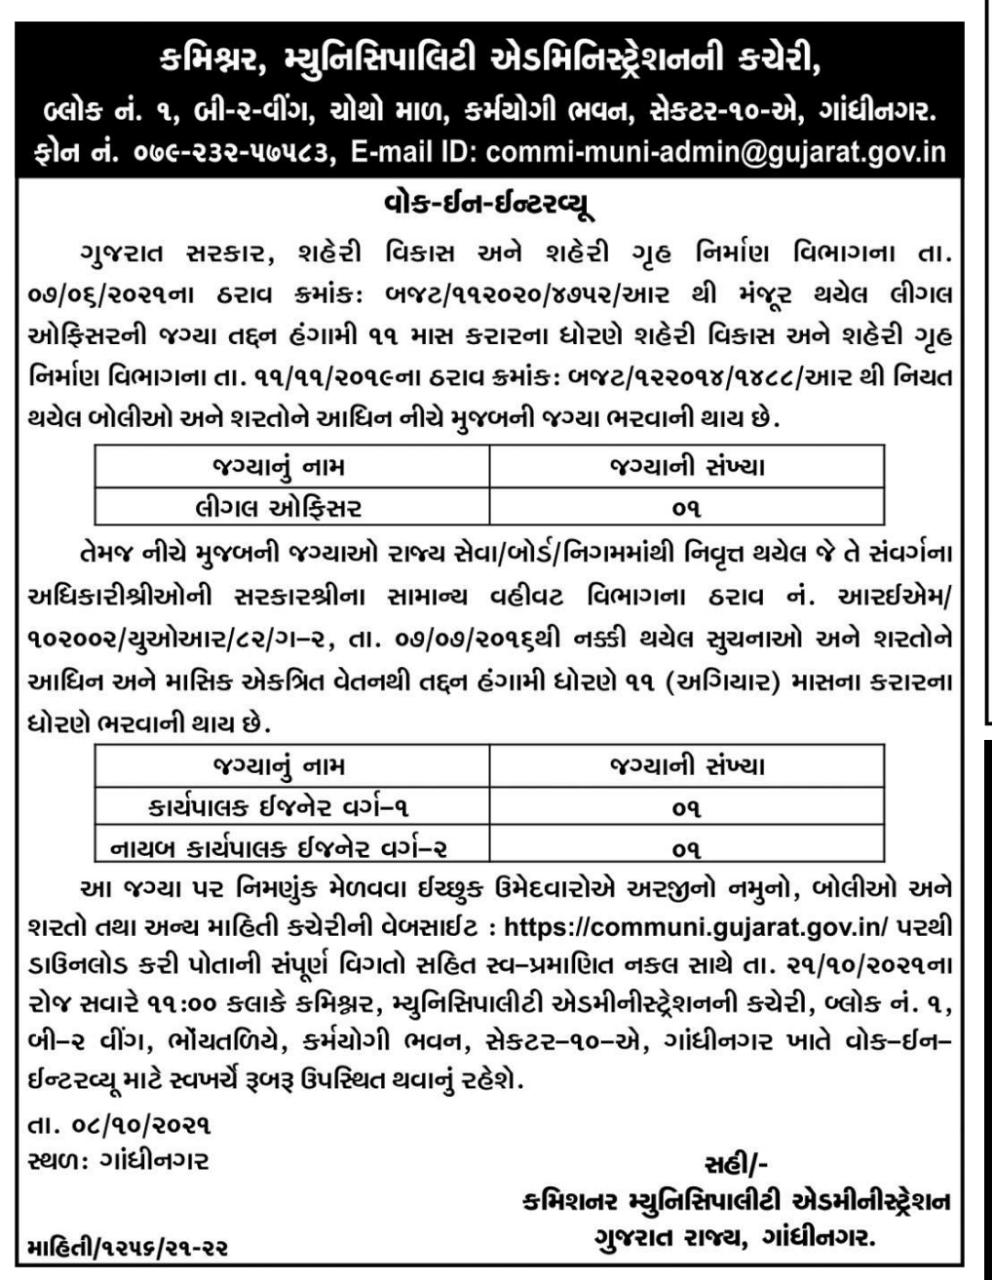 Office of the Commissioner Municipal Administration Legal Officer, Executive engineer & Deputy Executive Engineer Recruitment 2021